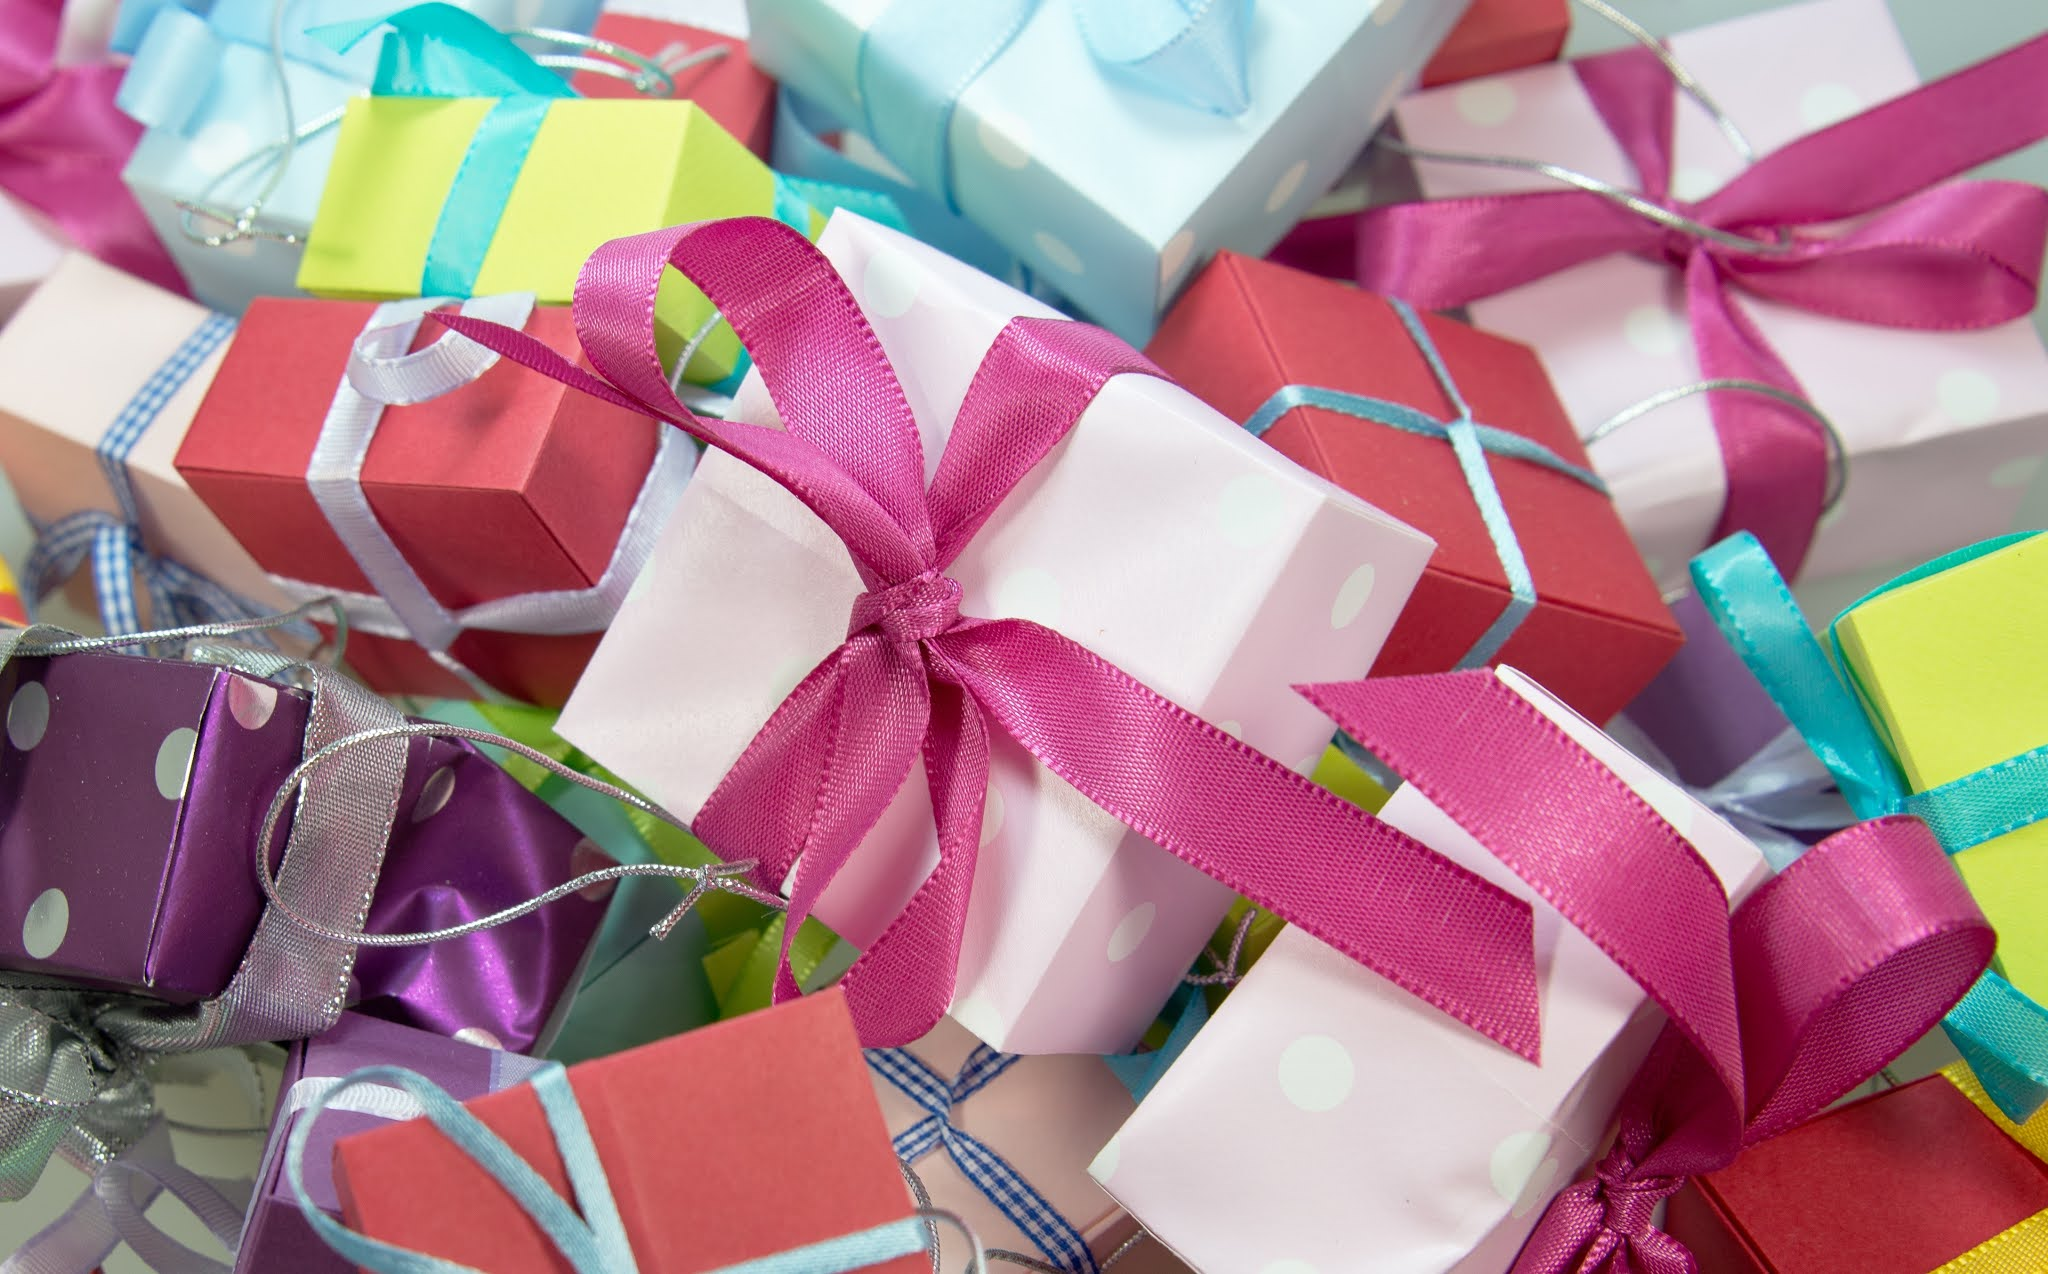 The Best Gifts for Sending Long Distance